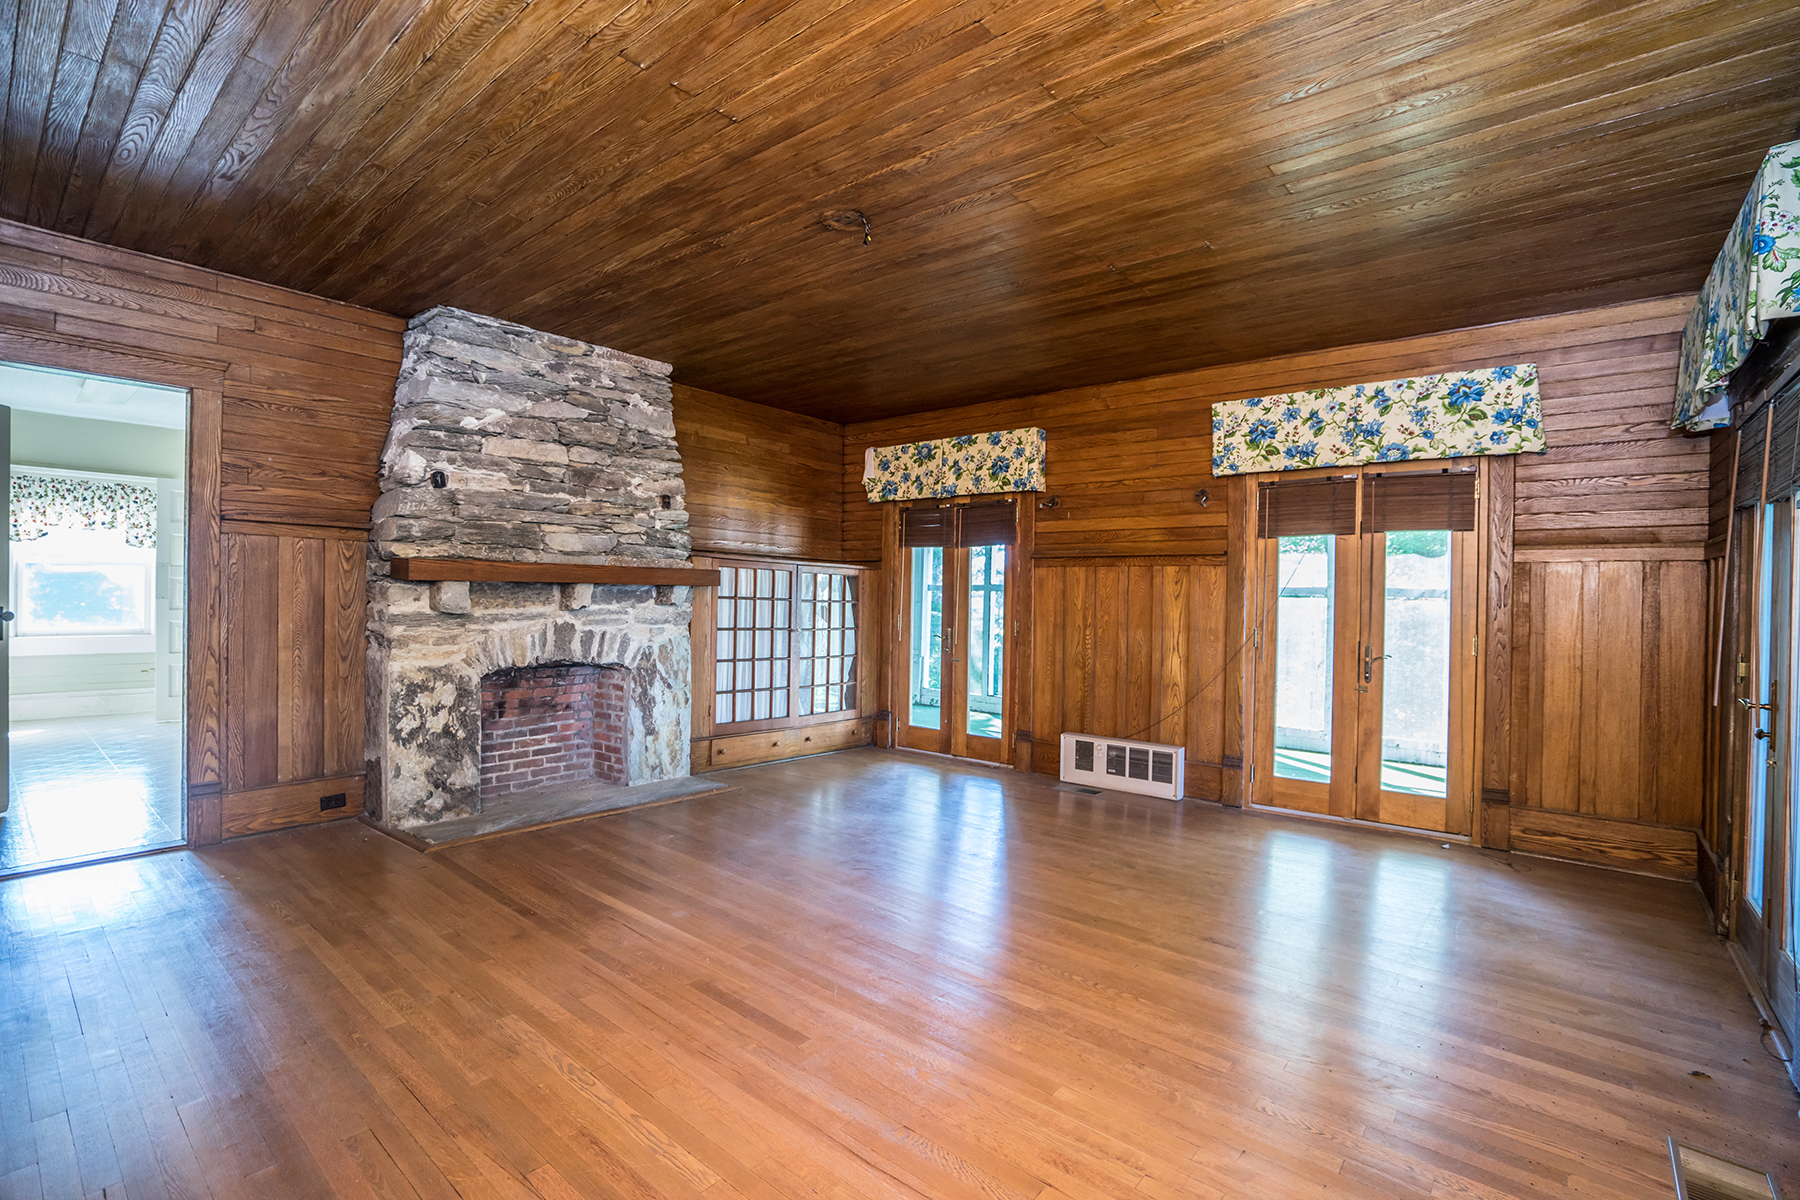 Additional photo for property listing at CENTURY OWNED PRIVATE FAMILY ESTATE 460/514  Pinnacle Ave,  Blowing Rock, North Carolina 28605 United States